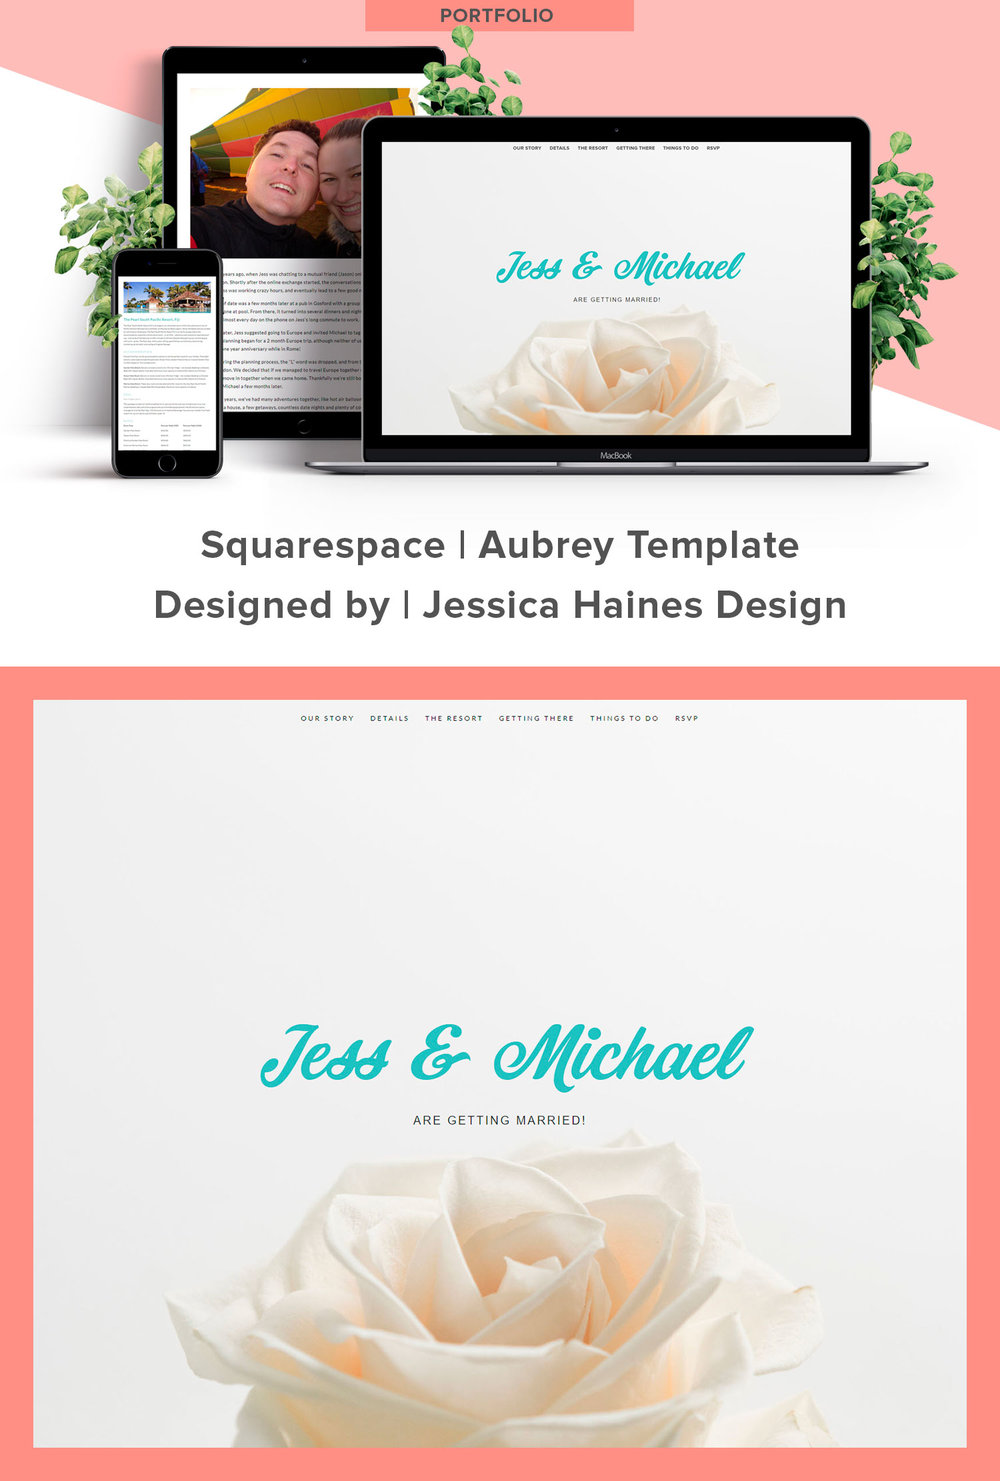 Jess and Michael are getting Married Website Design. Created by Jessica Haines Design